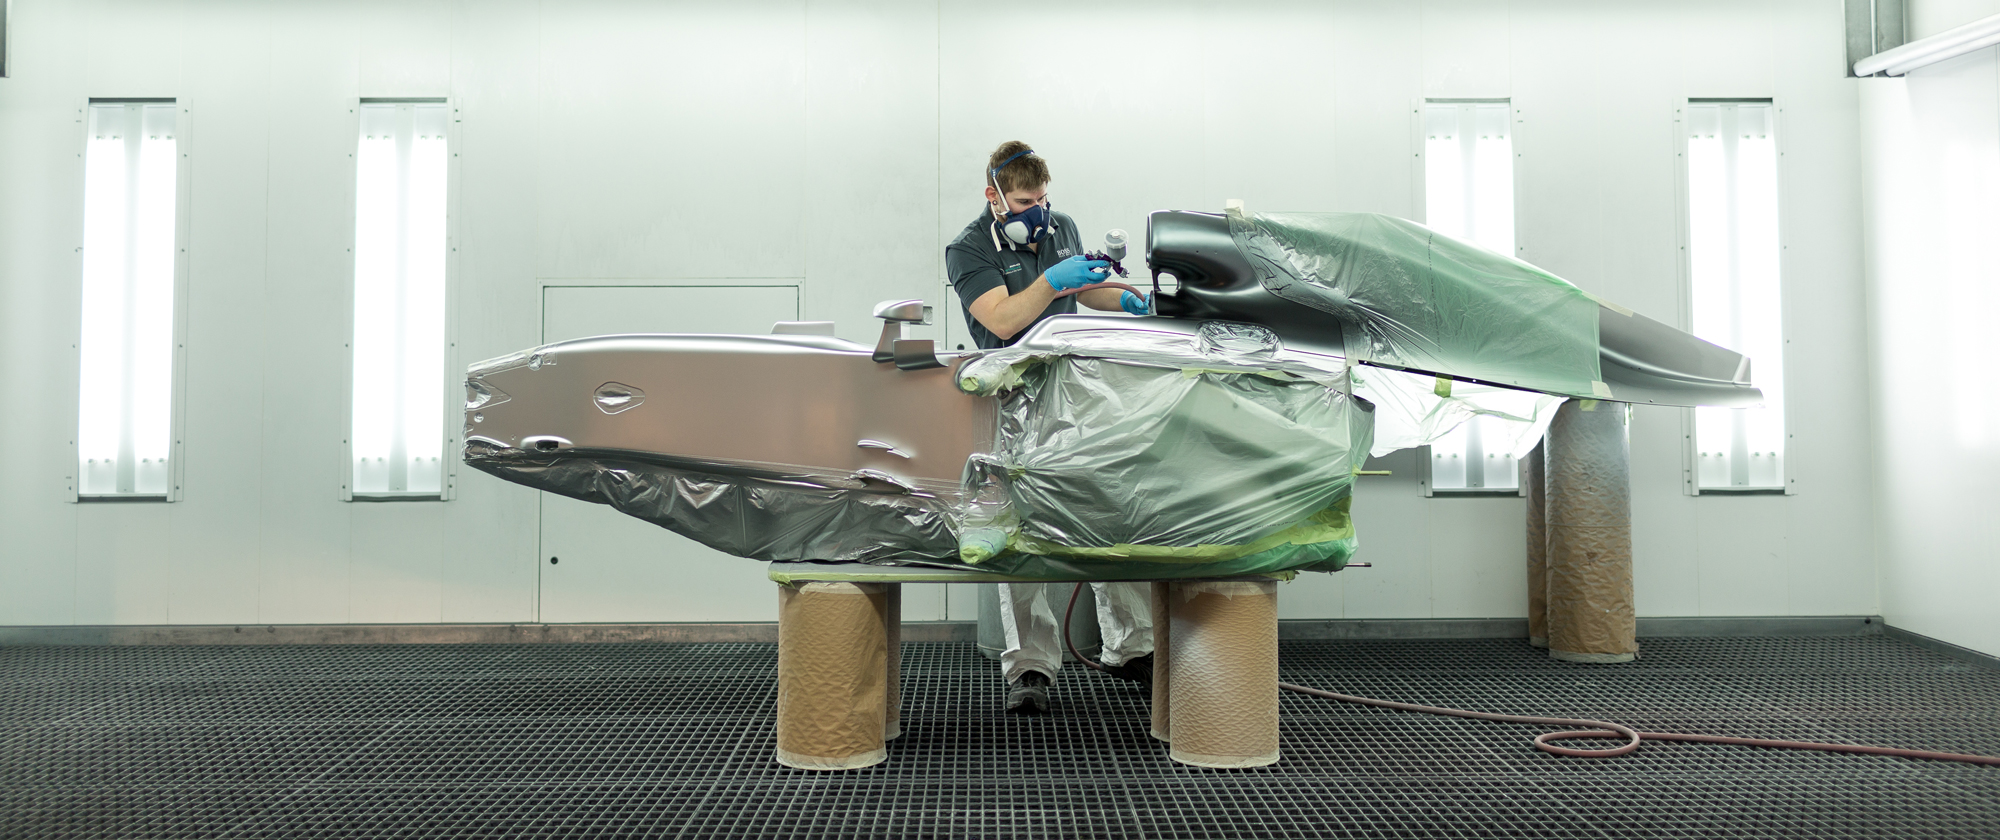 A portrait and locations shoot for Mercedes F1 to show the range, breadth and depth of careers in F1 at their factory in Brackley.